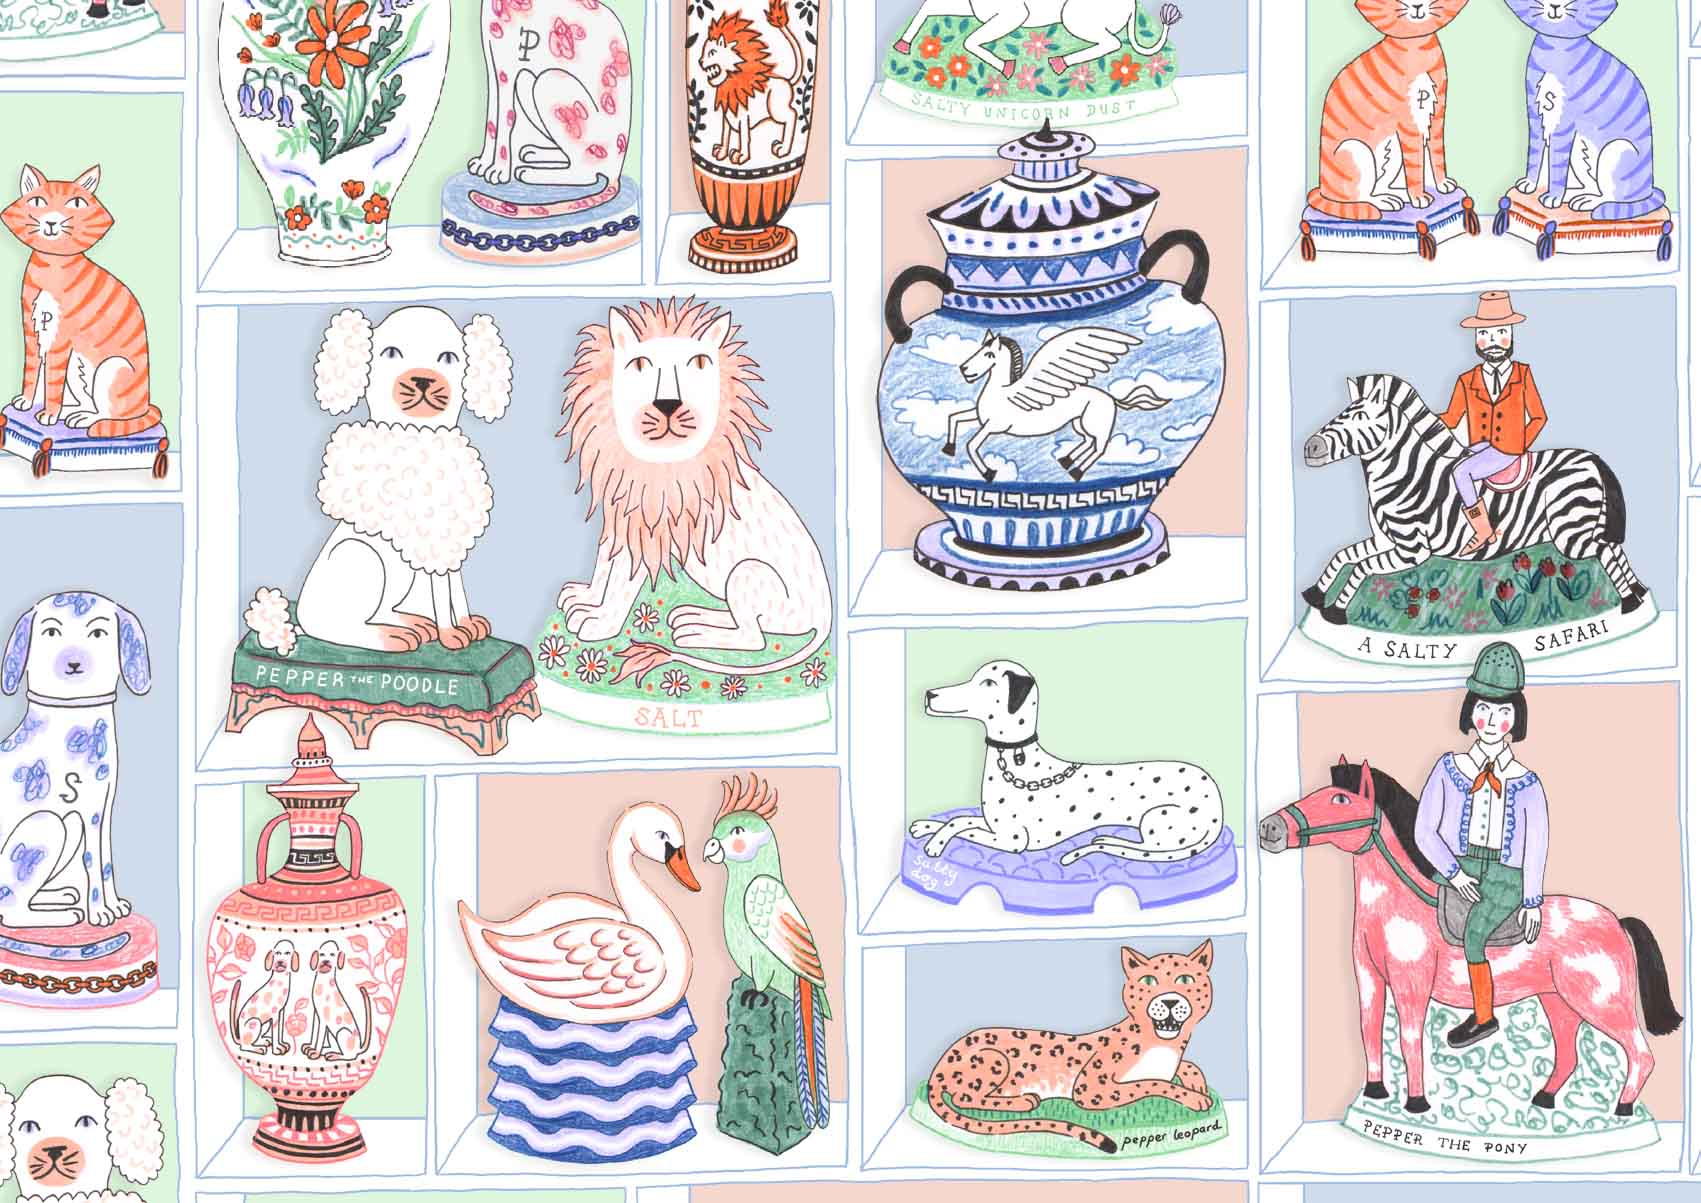 Salt-and-Pepper-shaker-collection-Illustrated-by-Jacqueline-Colley.jpg